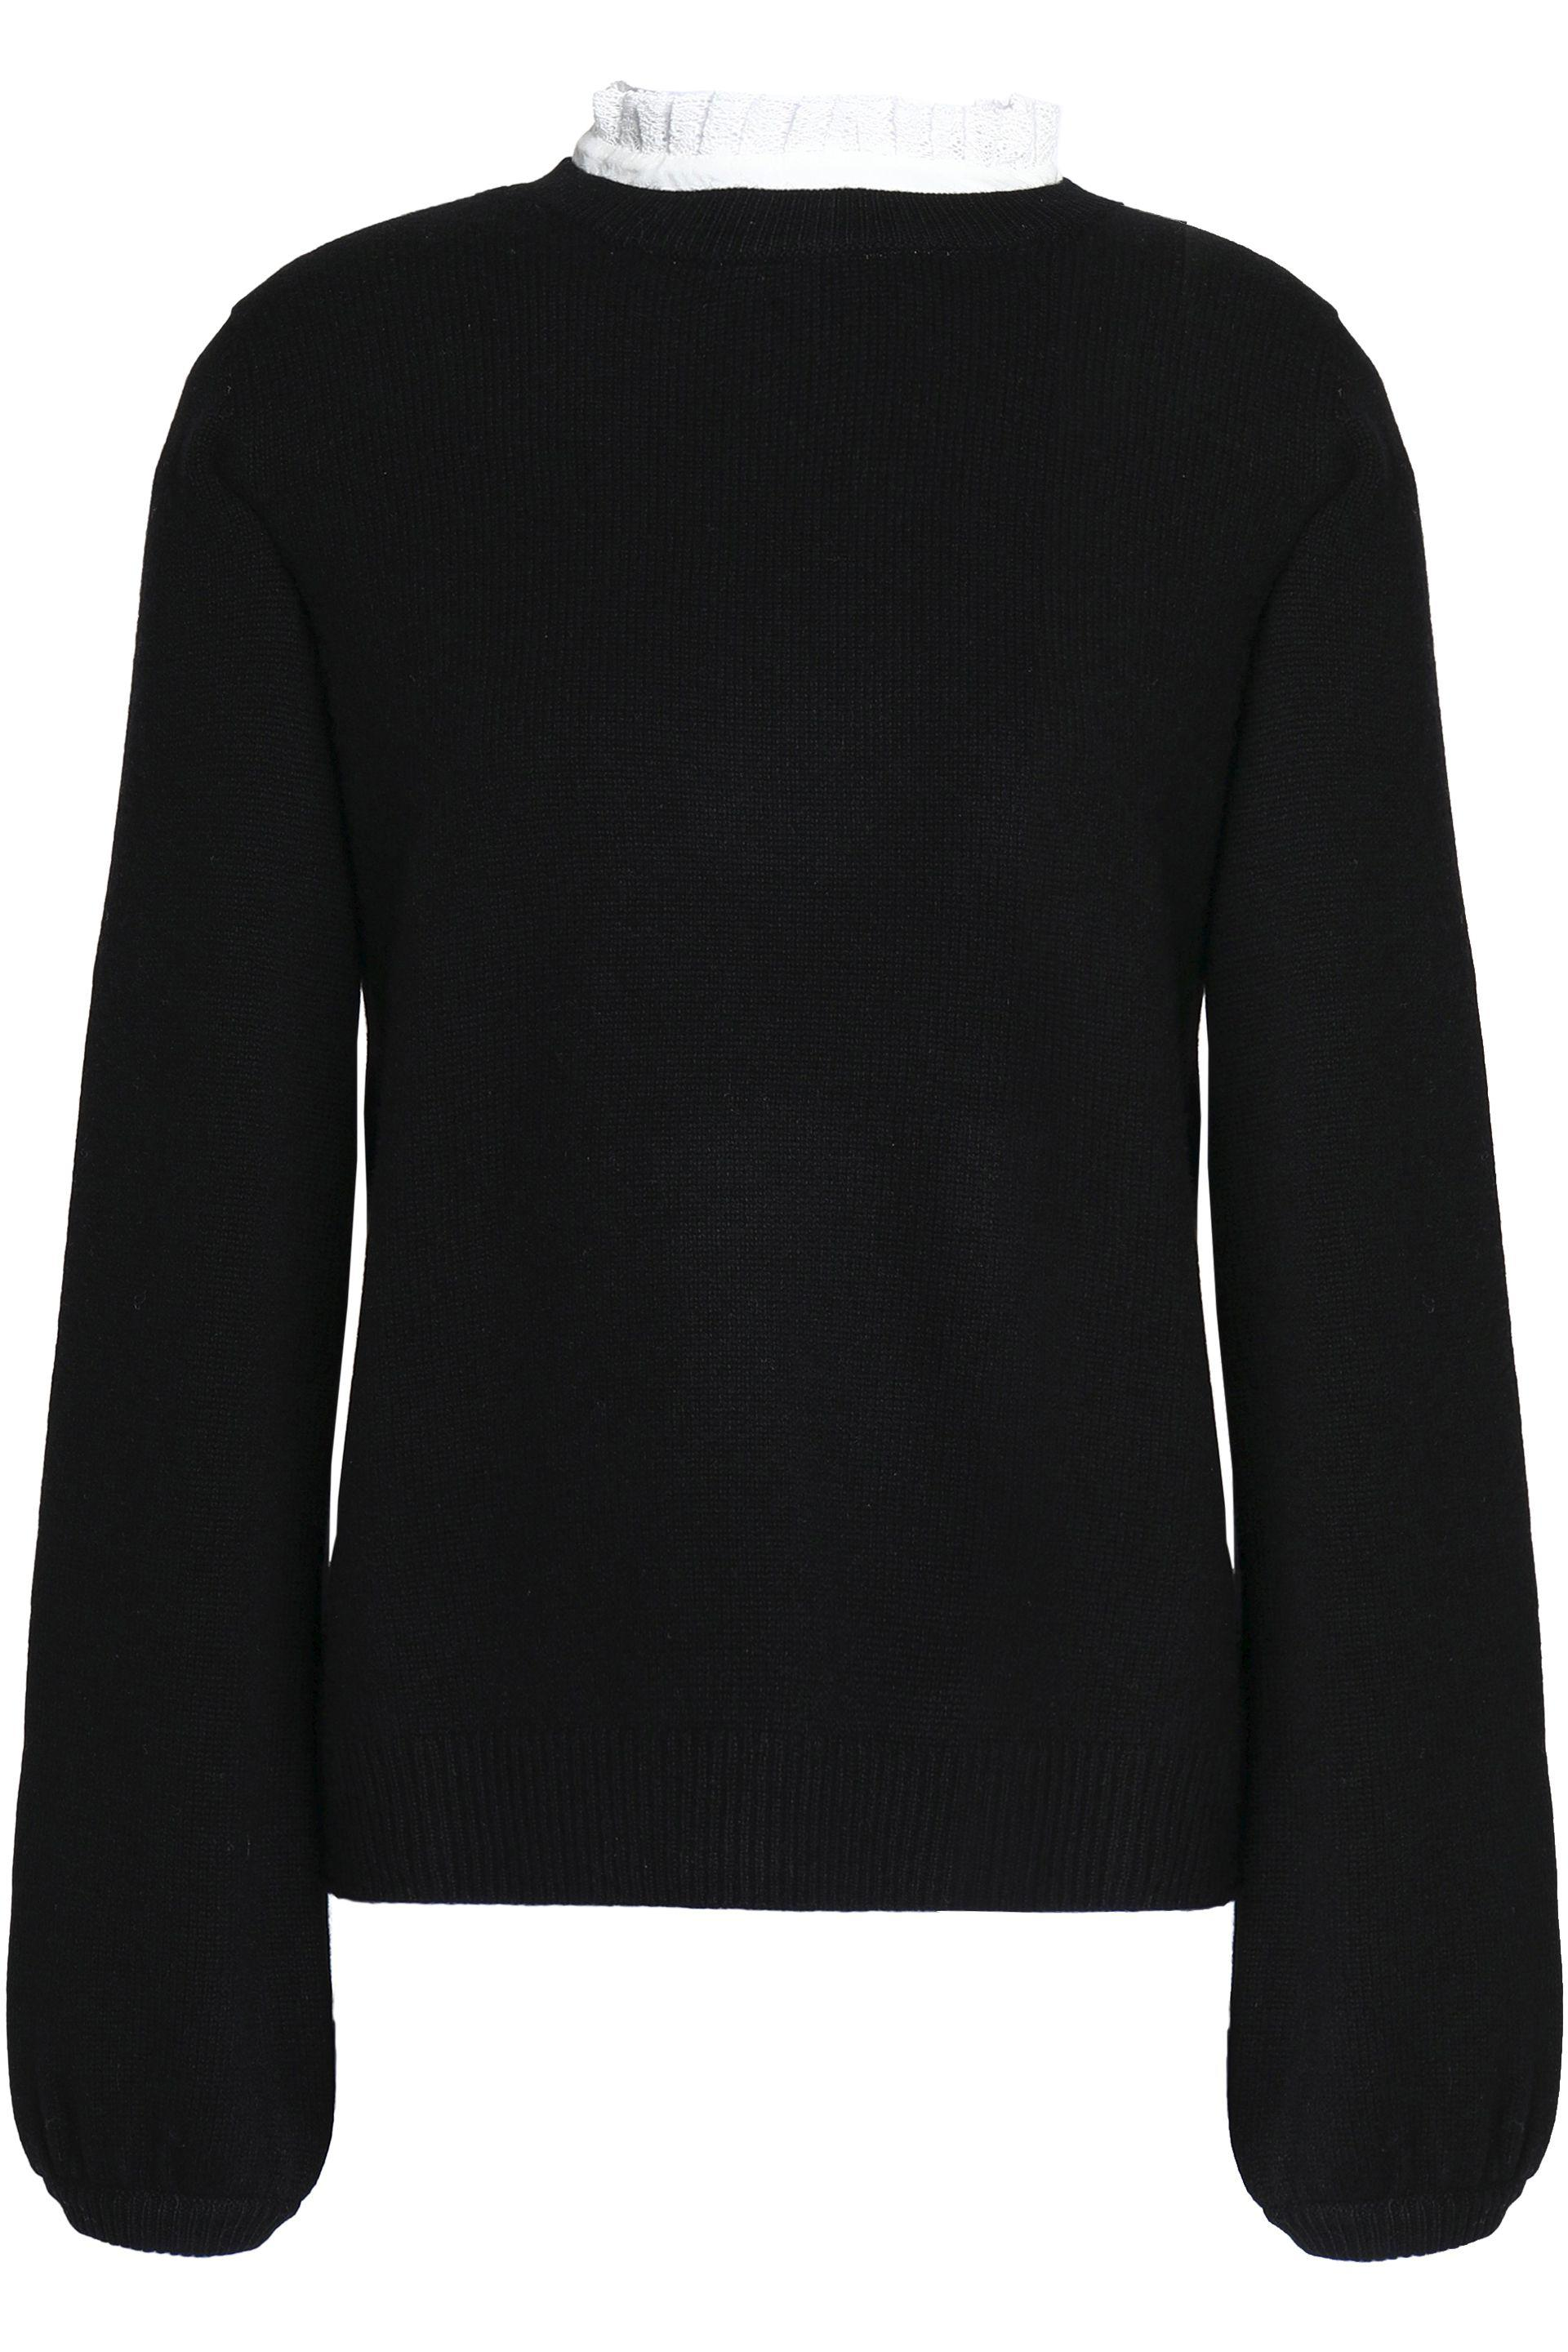 Joie Woman Affie Ruffle-trimmed Wool And Cashmere-blend Sweater Black Size XXS Joie wKqX6